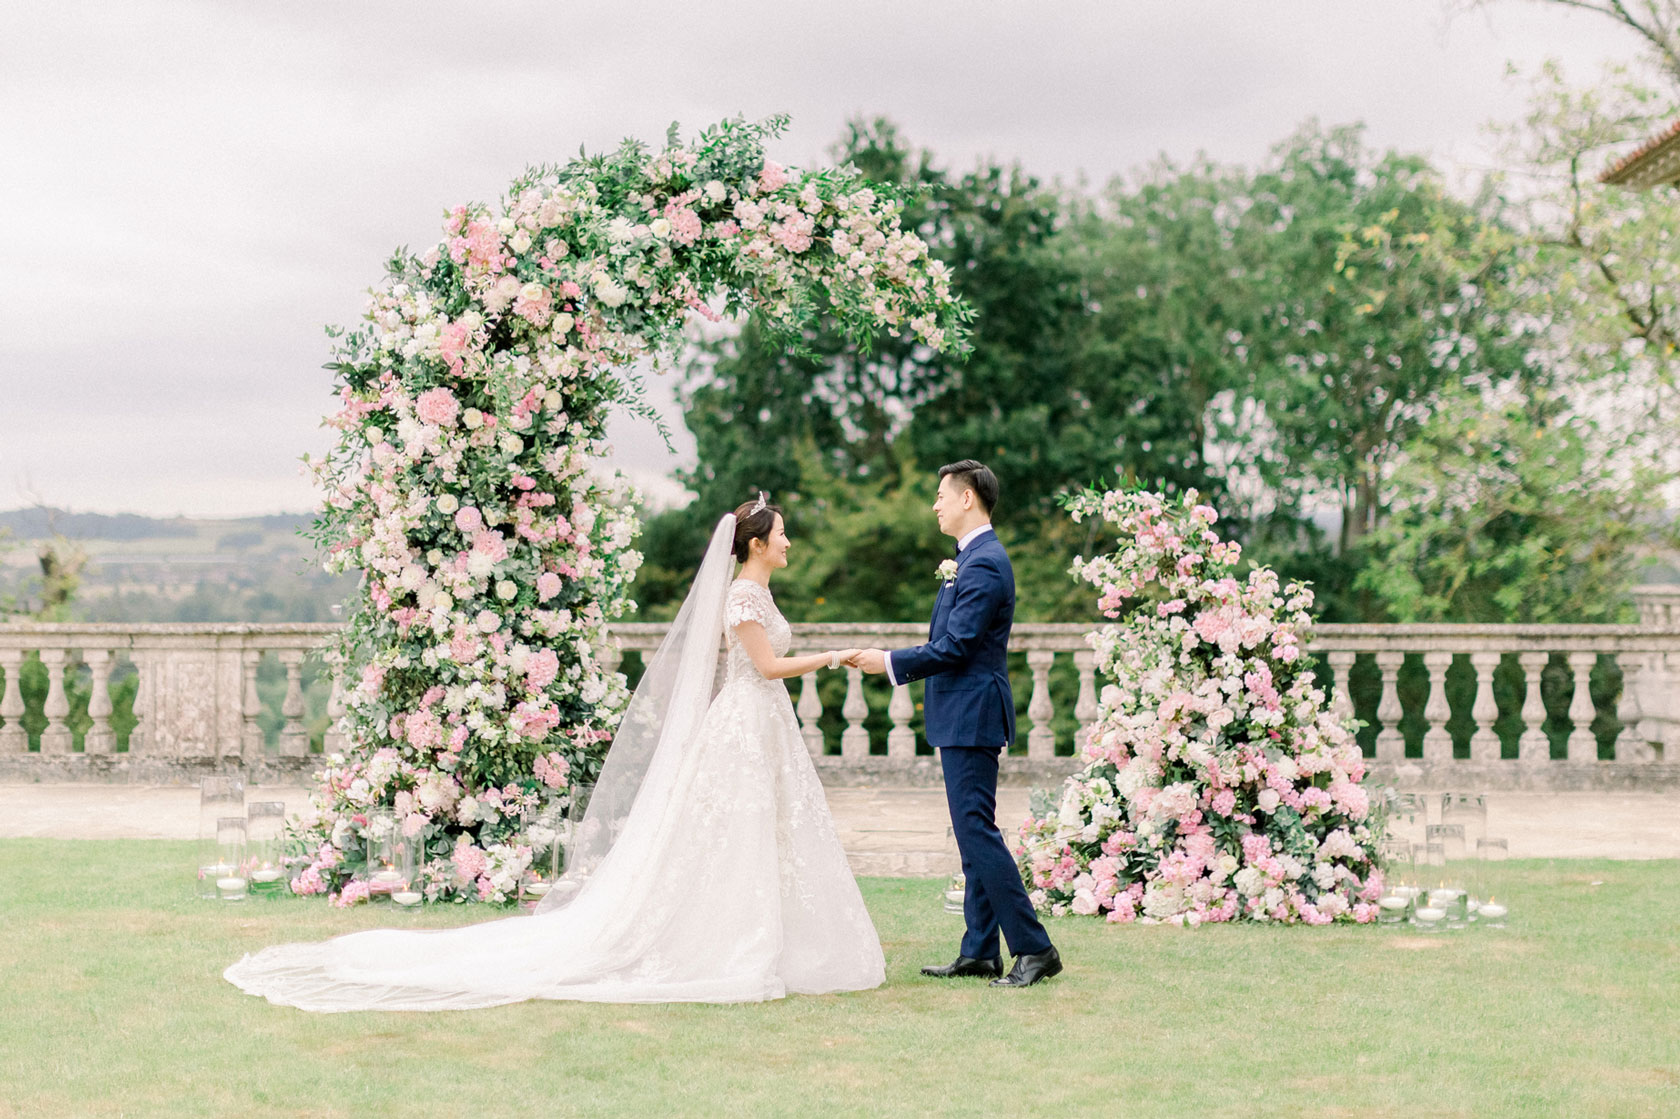 A Chinese bride and groom outside at Cliveden House getting married in front of a flower arch